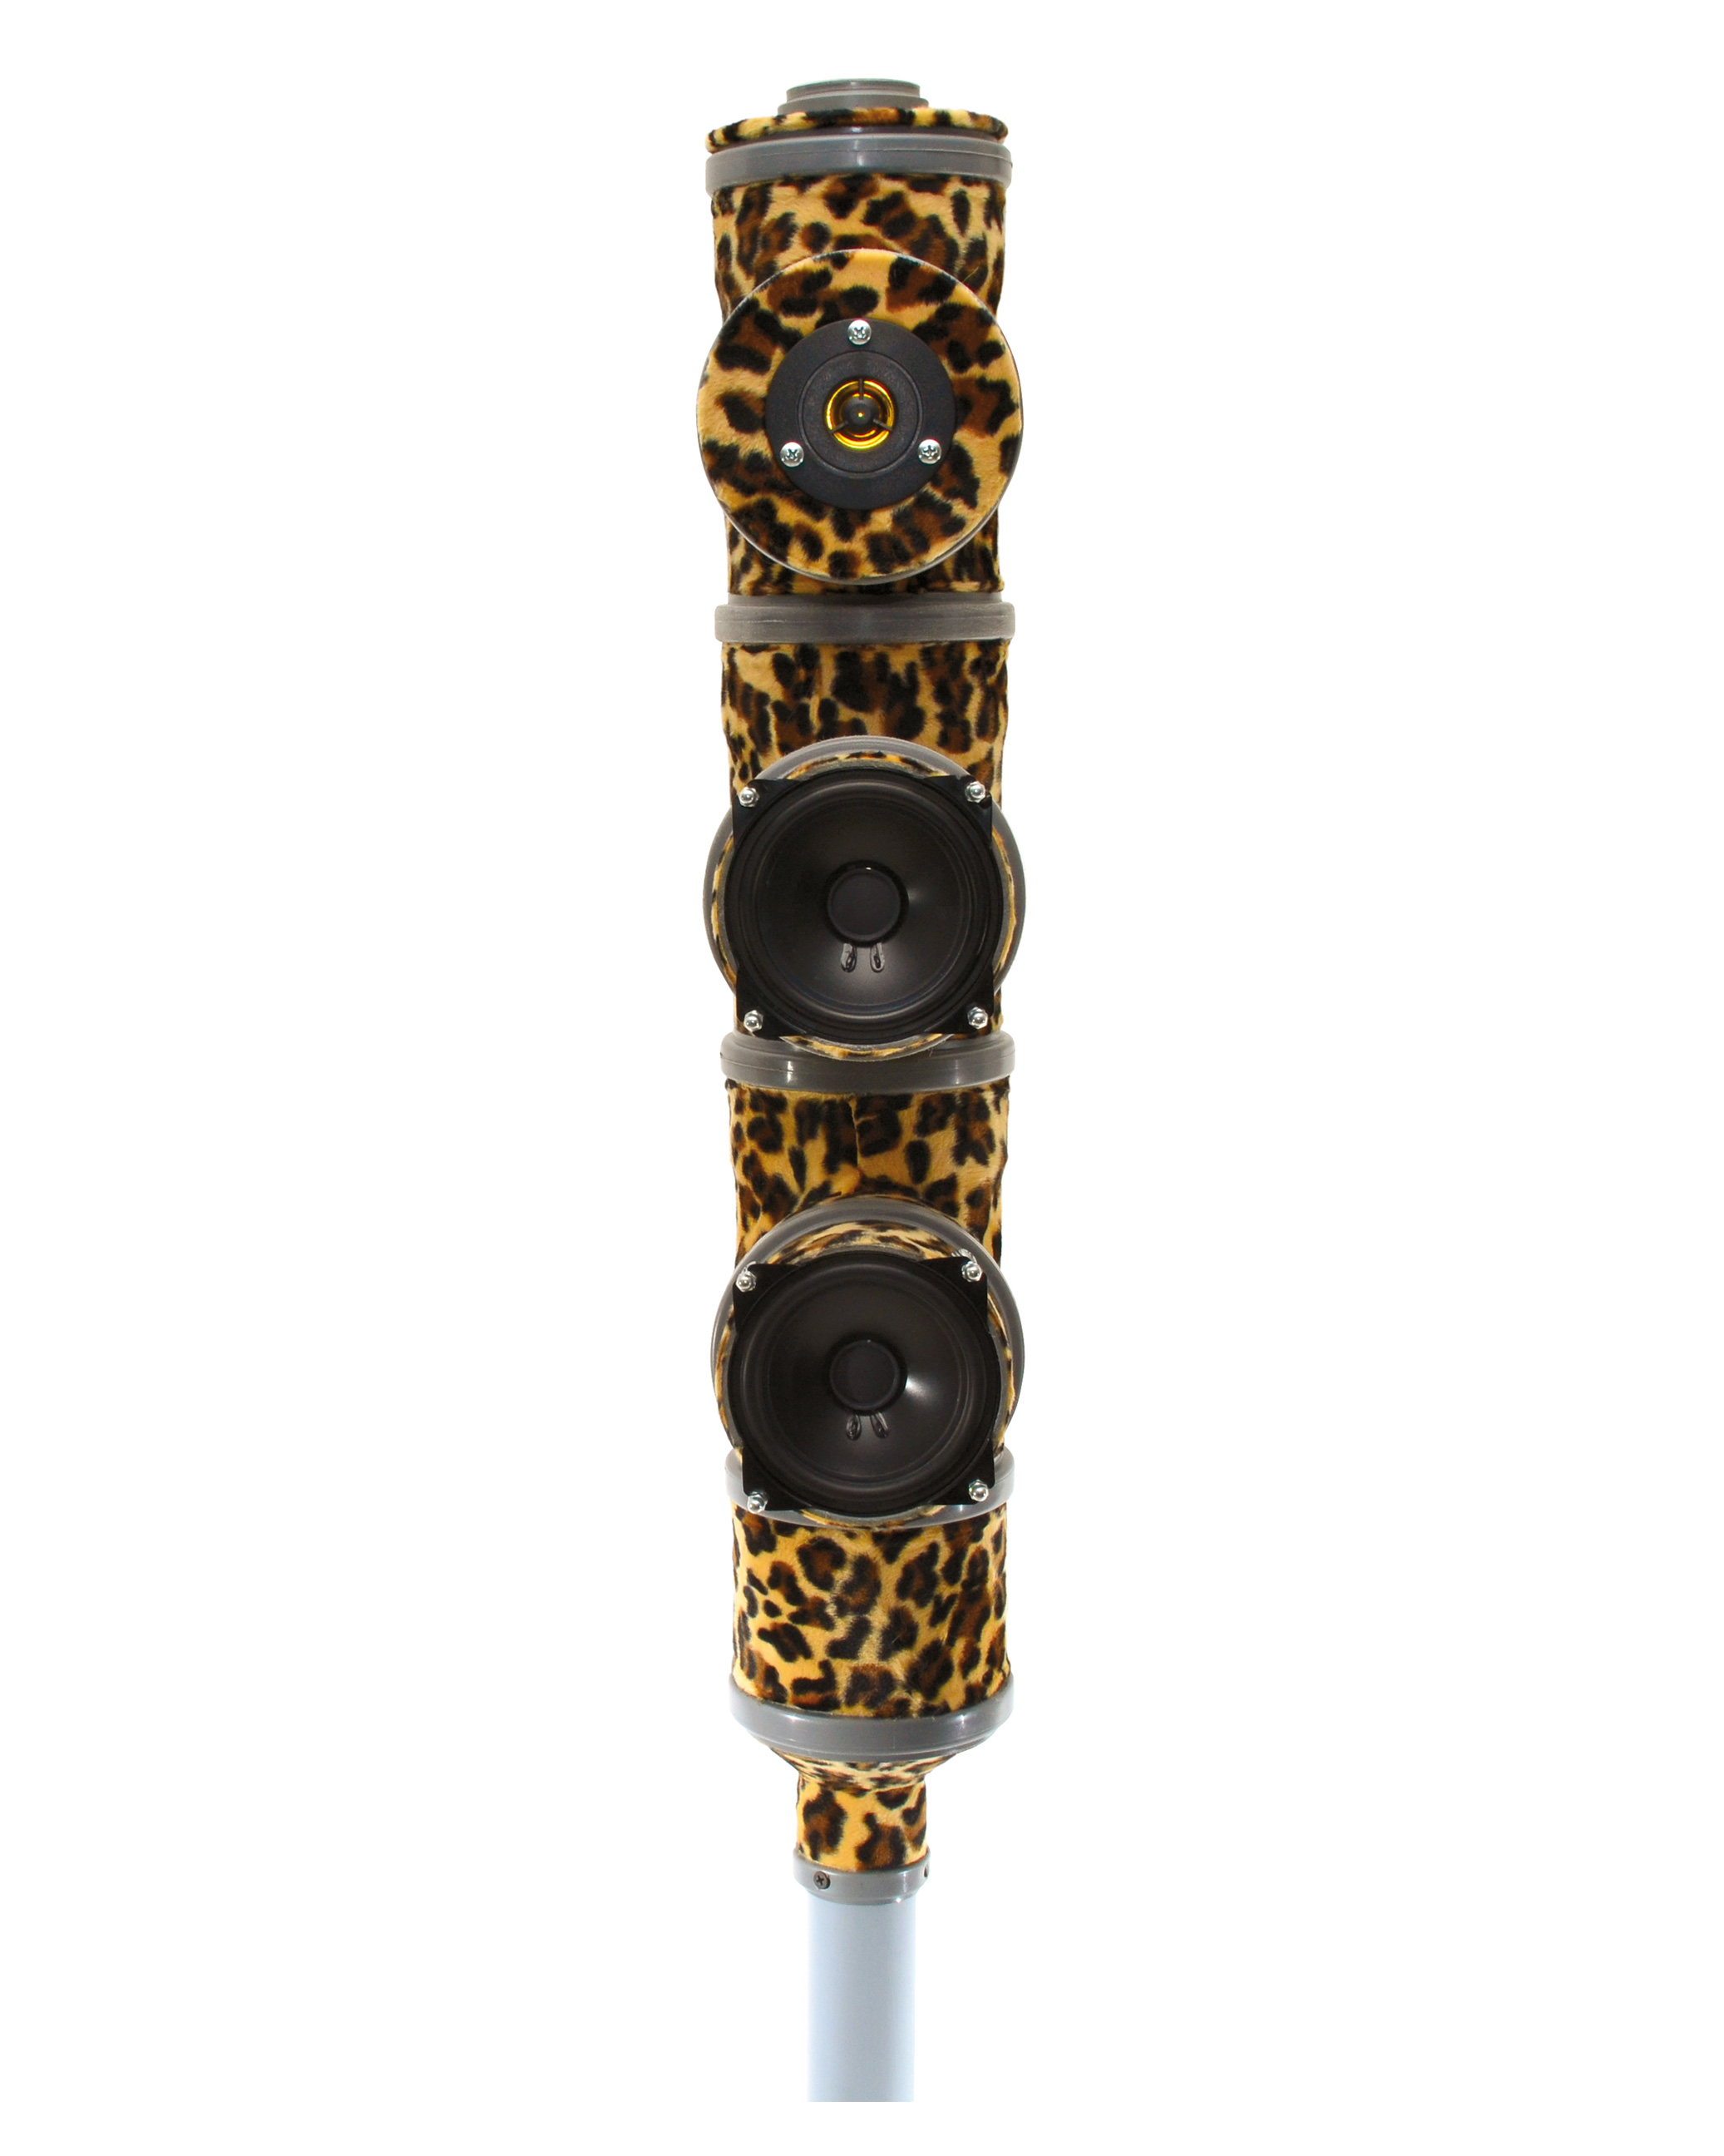 Modell Traffic Light Kunstfellbezug Leopard Ansicht 1